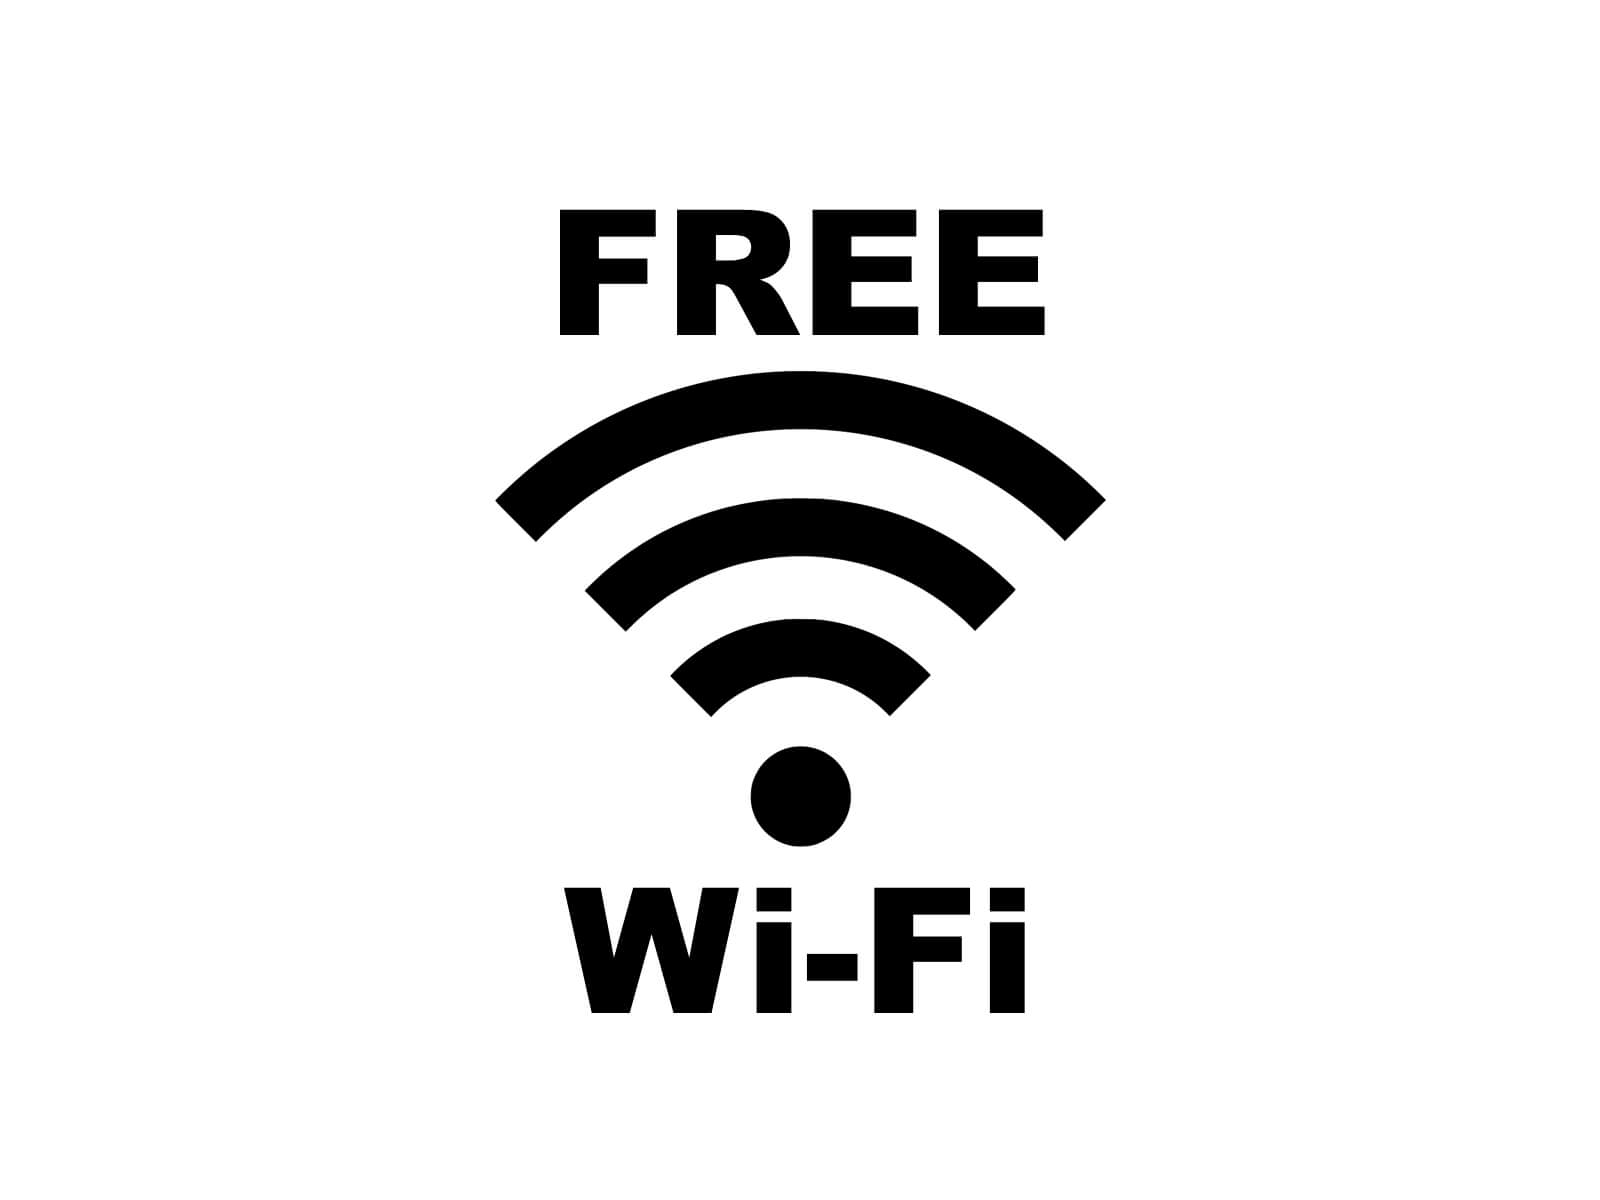 +workspace free wi-fi